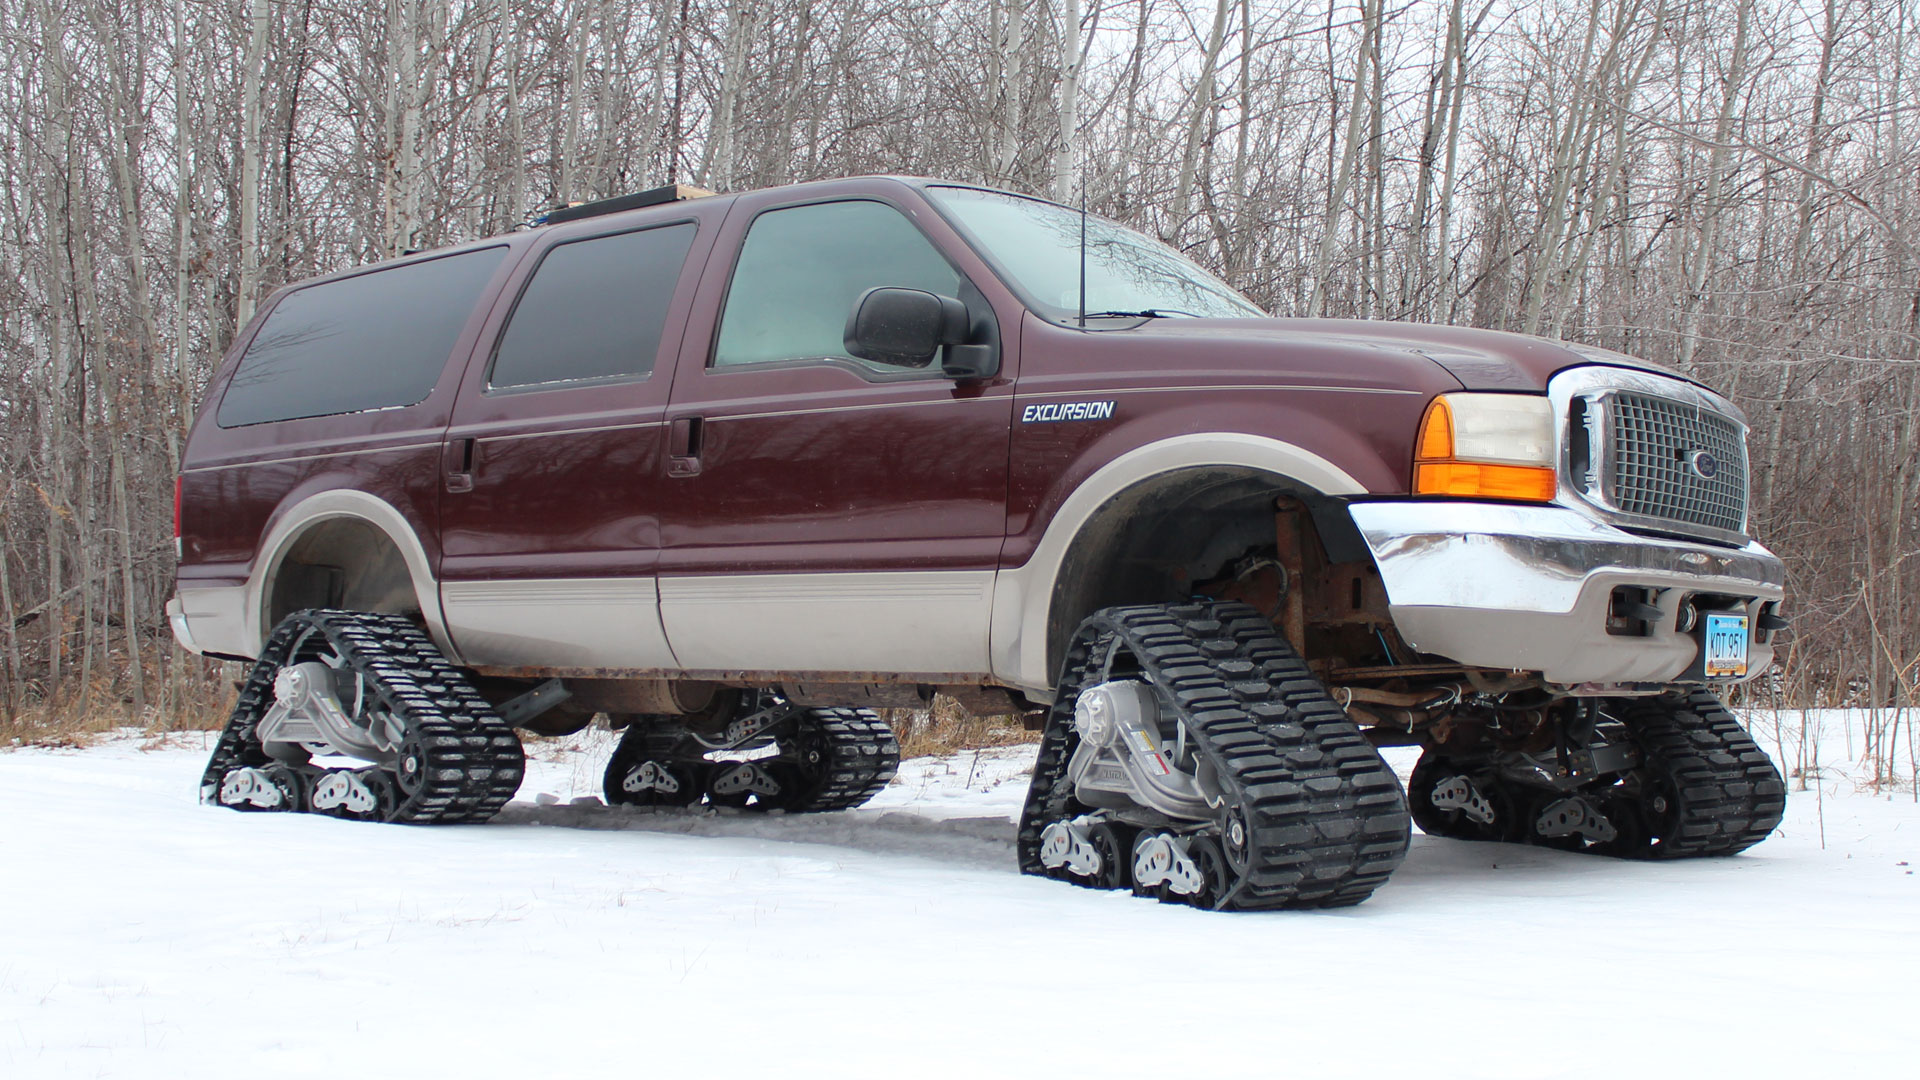 150 Tracks on a Ford Excursion